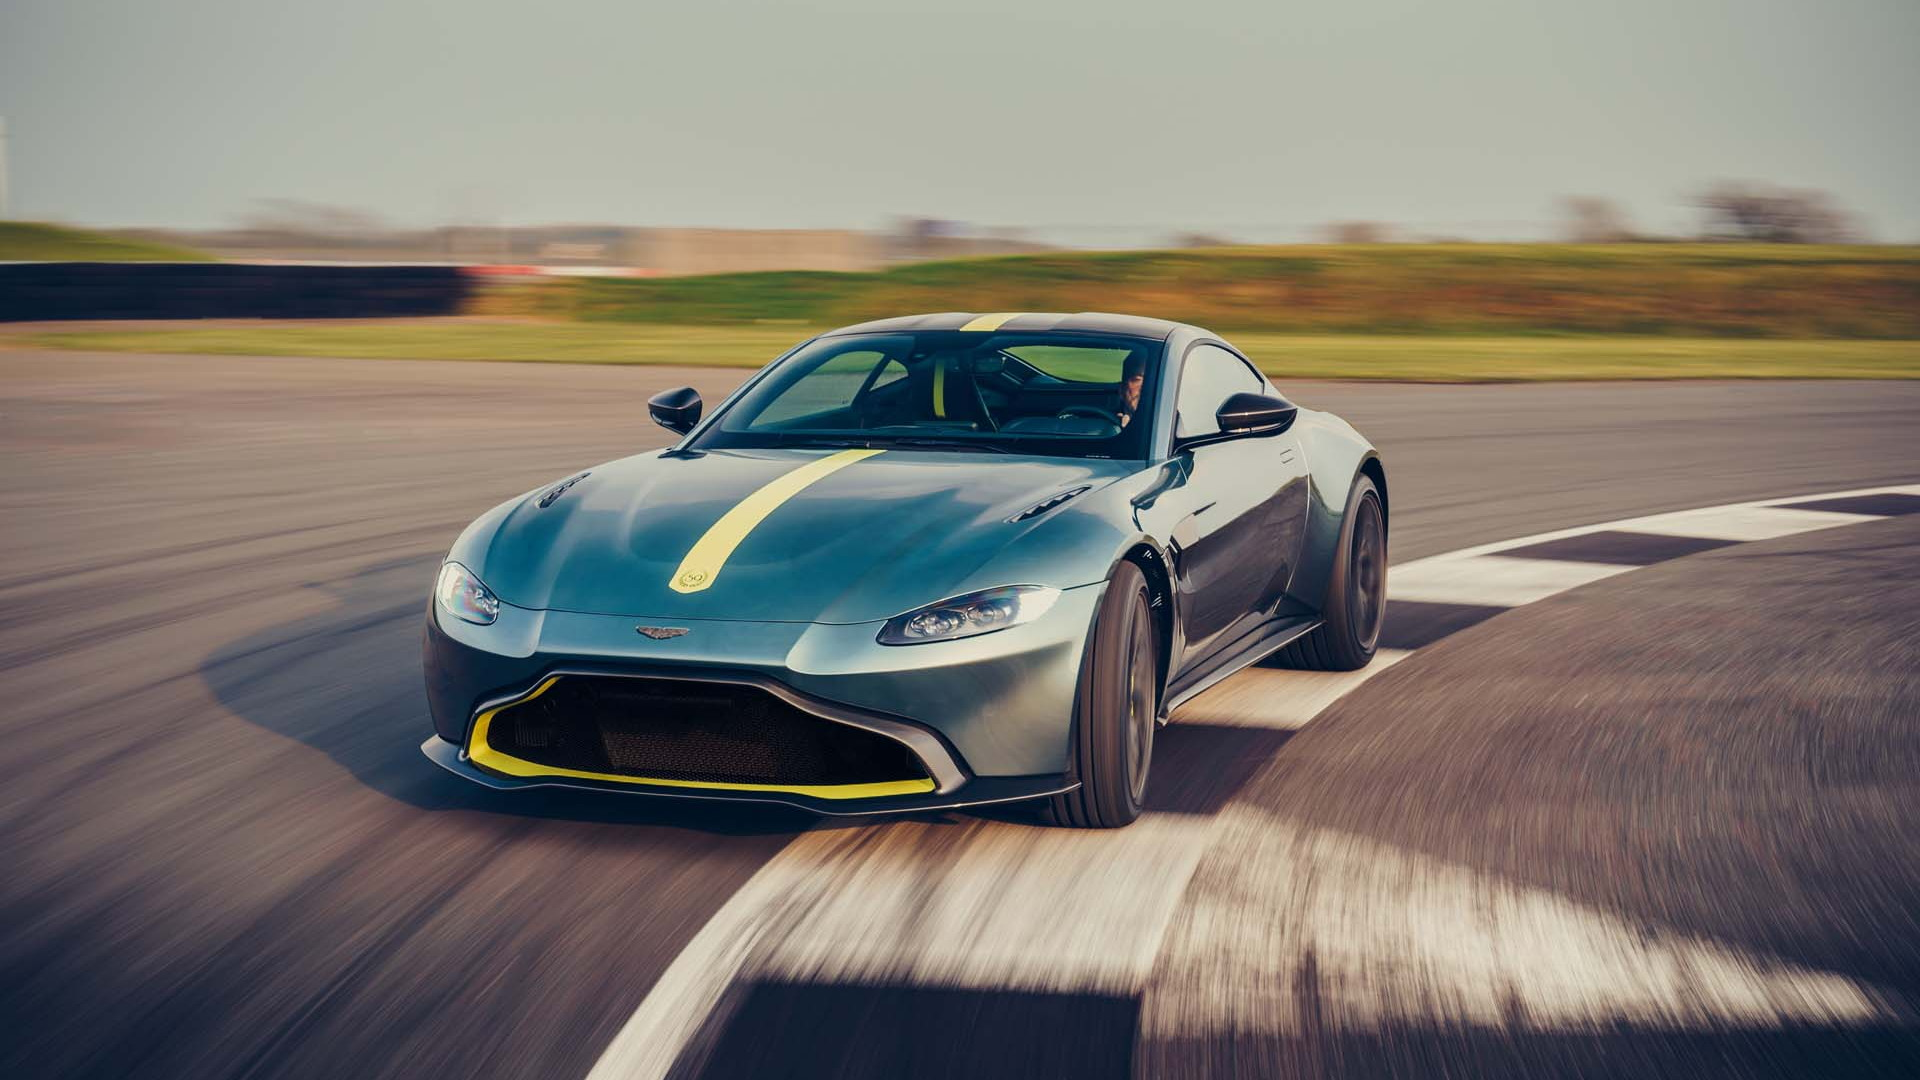 Aston Martin gives Vantage AMR a stick shift for serious driving enthusiasts